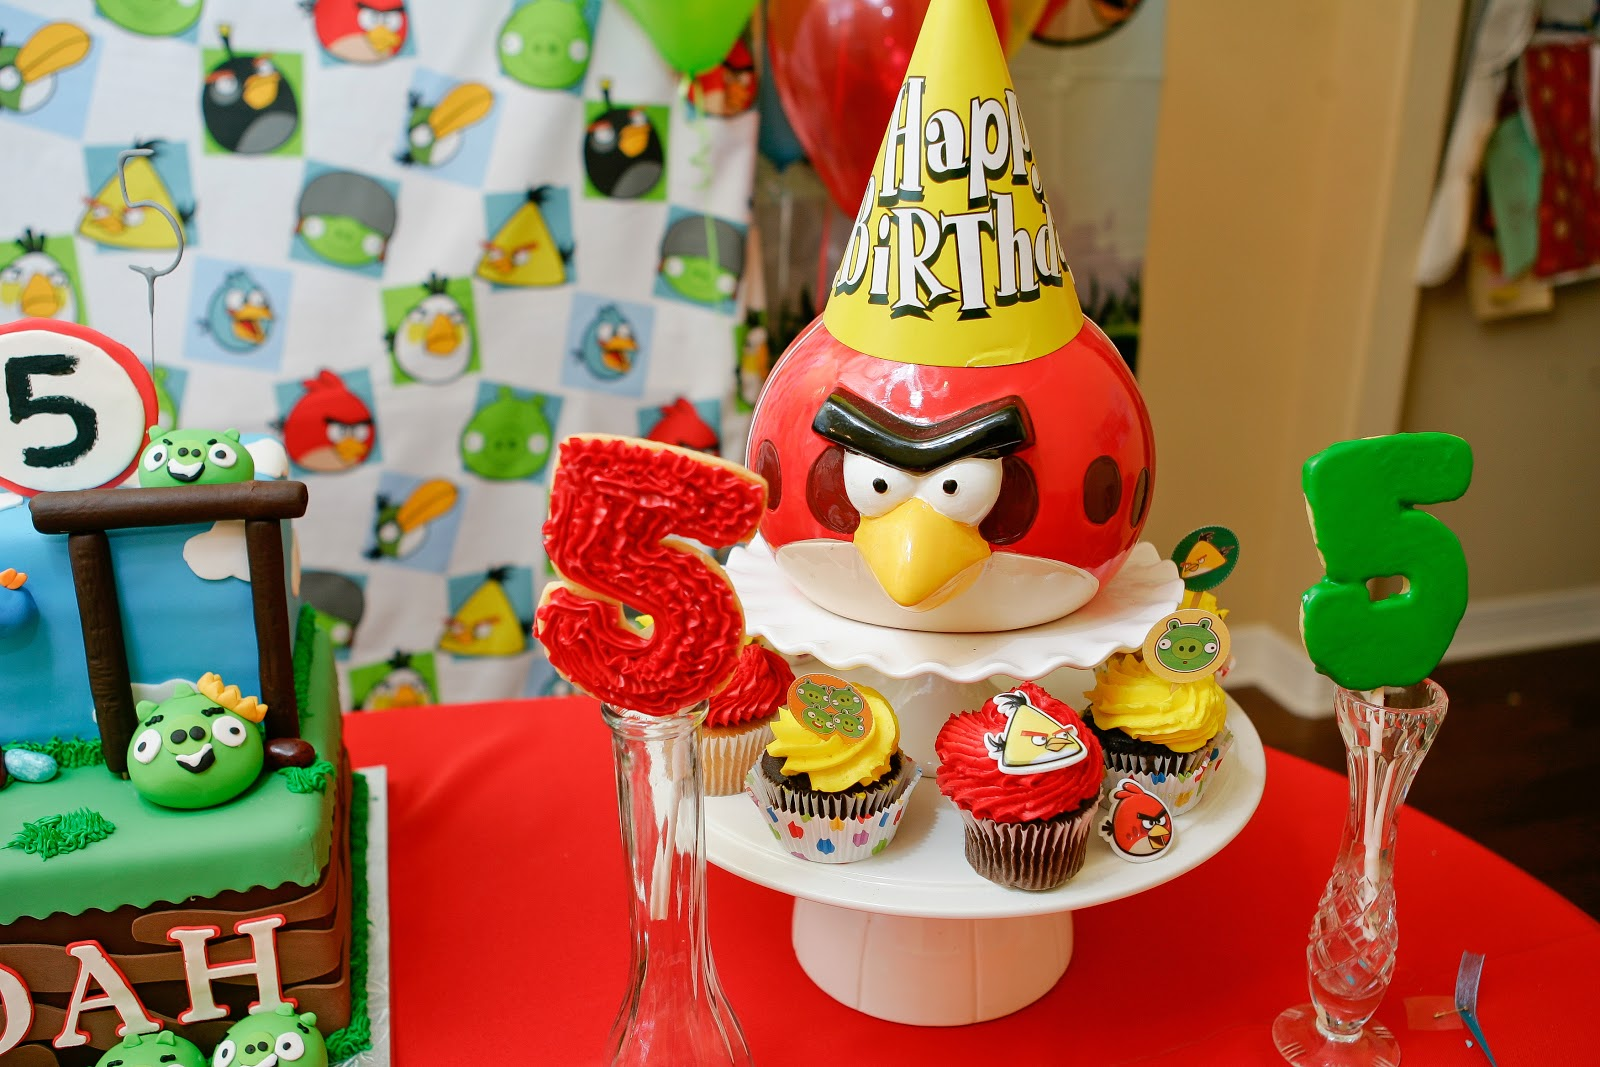 Choosing joy today angry bird party decorations for Angry birds birthday party decoration ideas